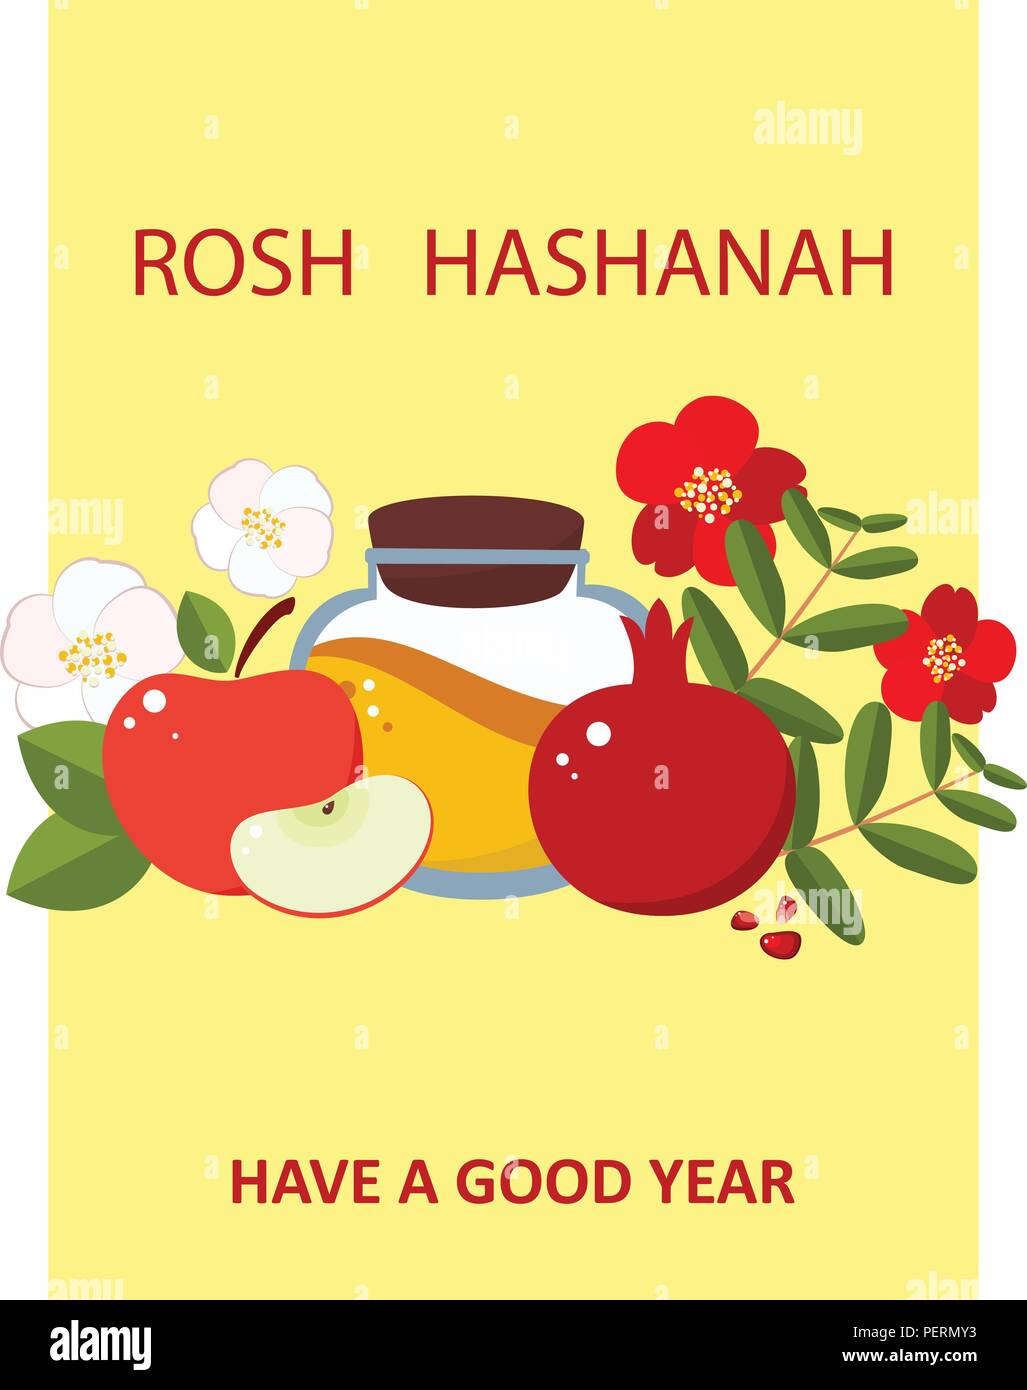 Rosh Hashanah Card Stock Photos Rosh Hashanah Card Stock Images